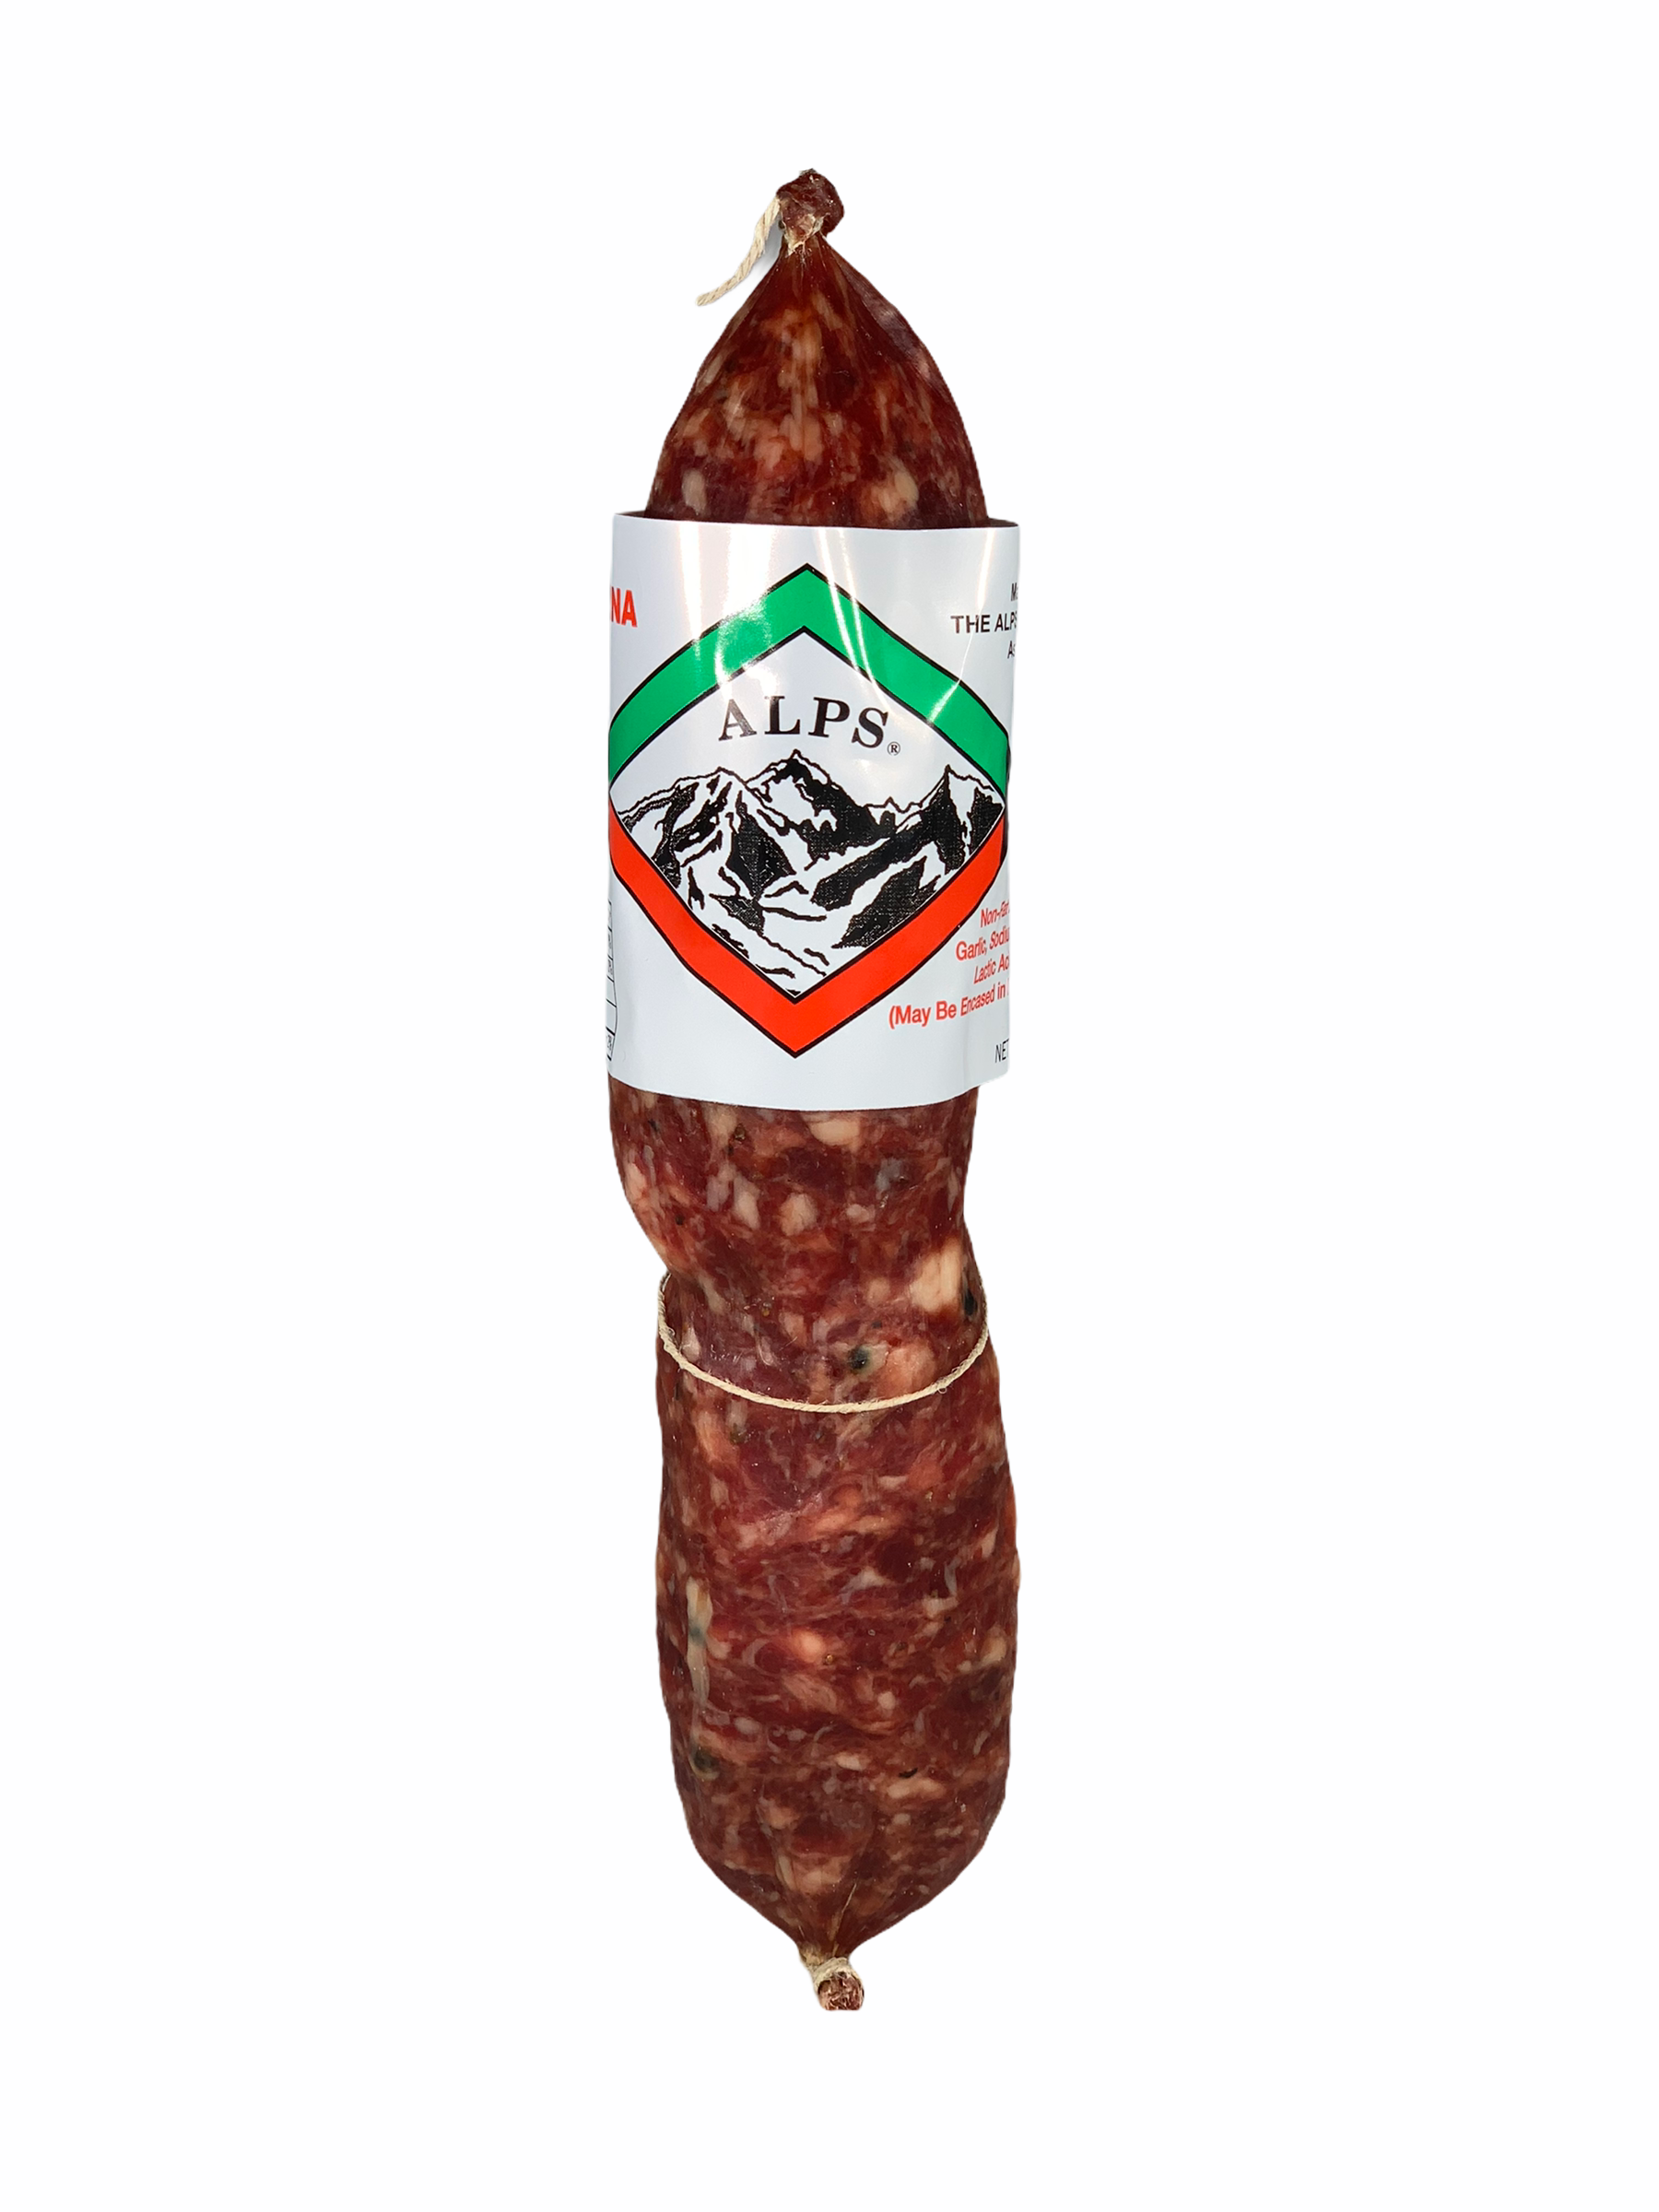 Sweet Soppressata Alpina, Alps approximately 1Lb